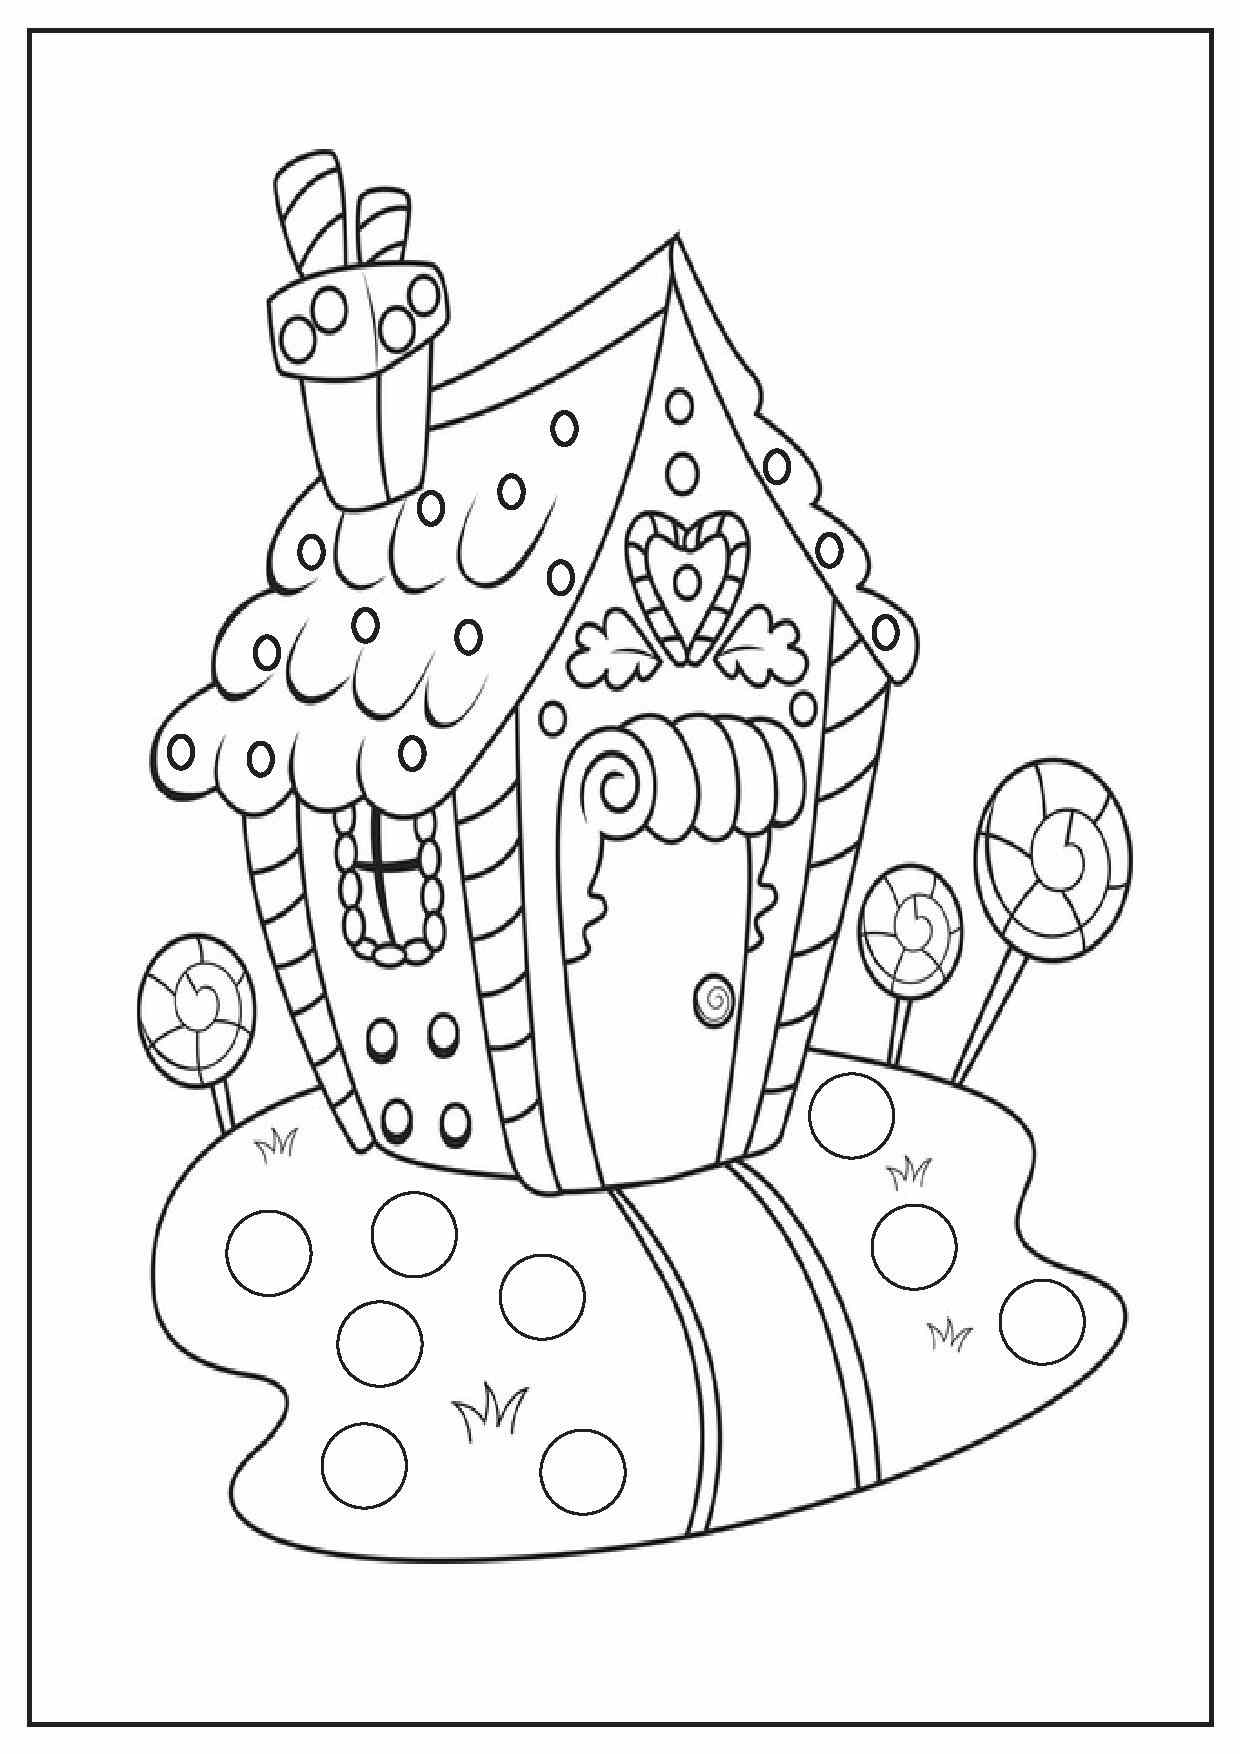 Christmas Coloring Sheets With Math Problems Pages Printable